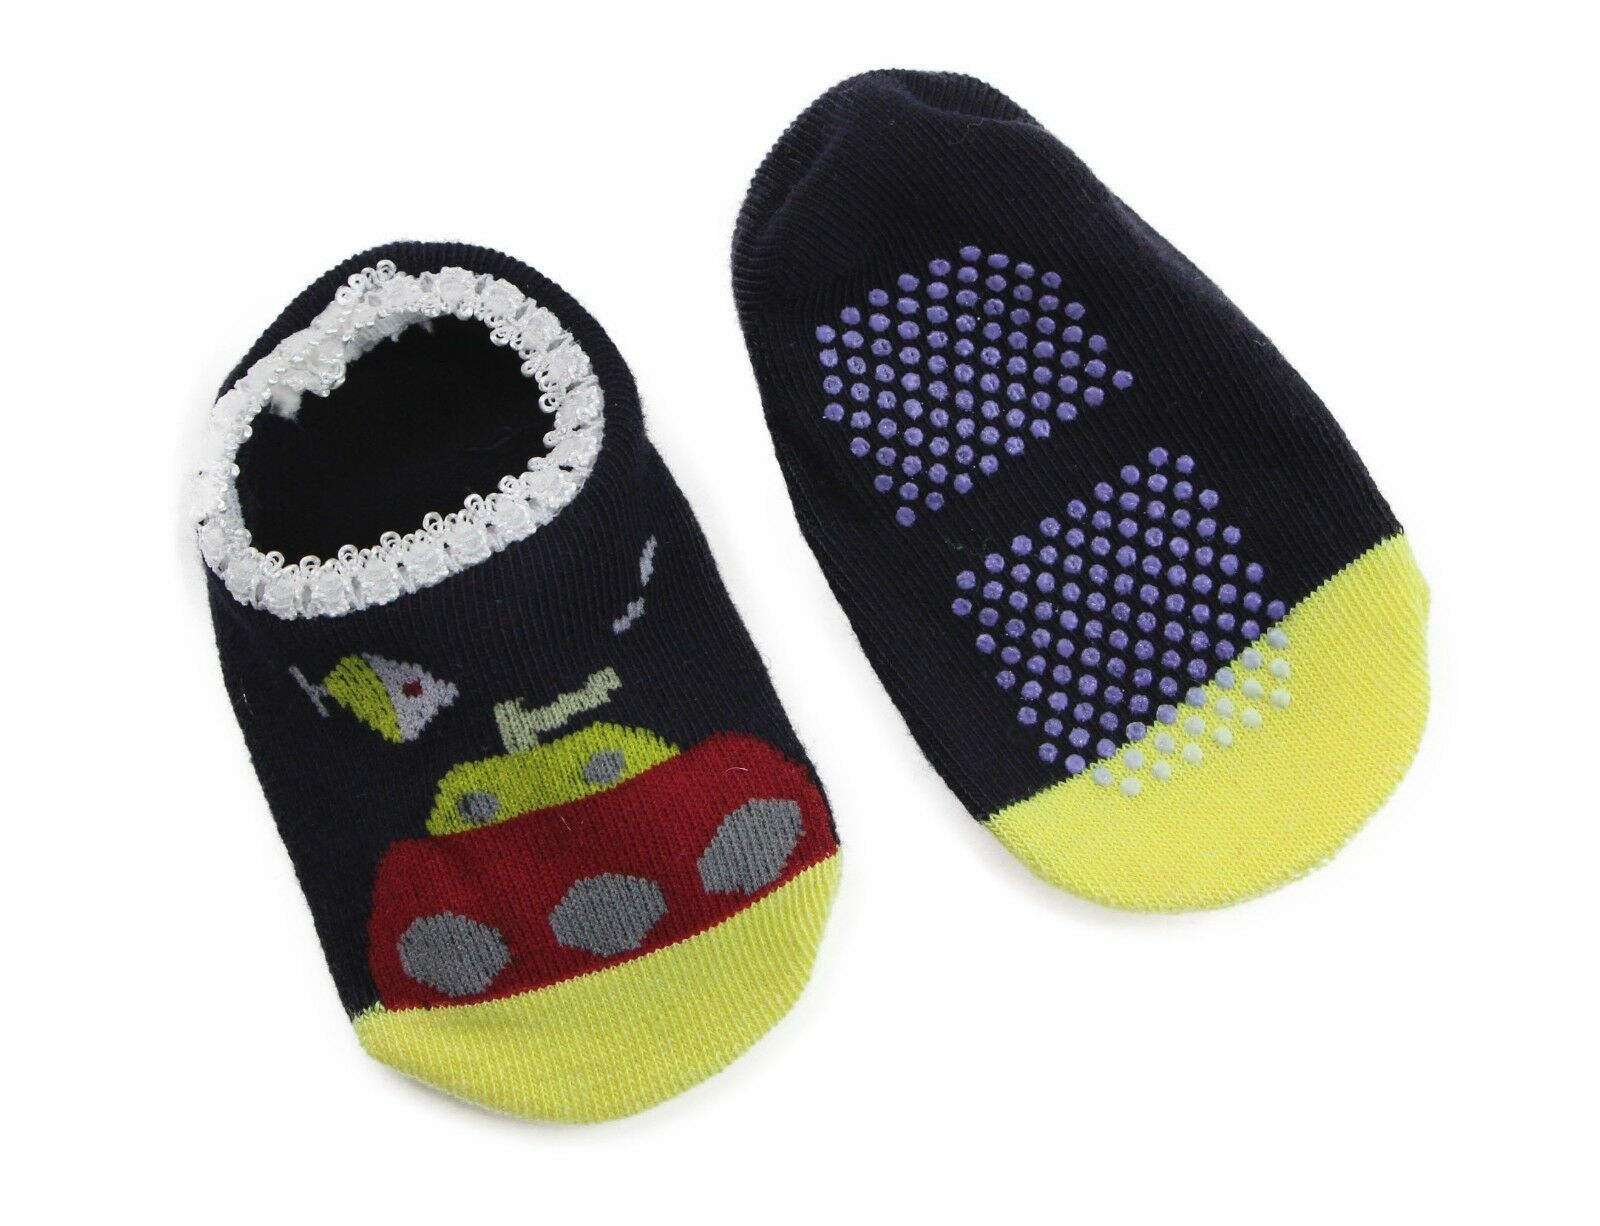 thumbnail 32 - Baby Footlets Kids Toddler Cotton Socks Anti Slip Grip Boys Girls 6-18 Months